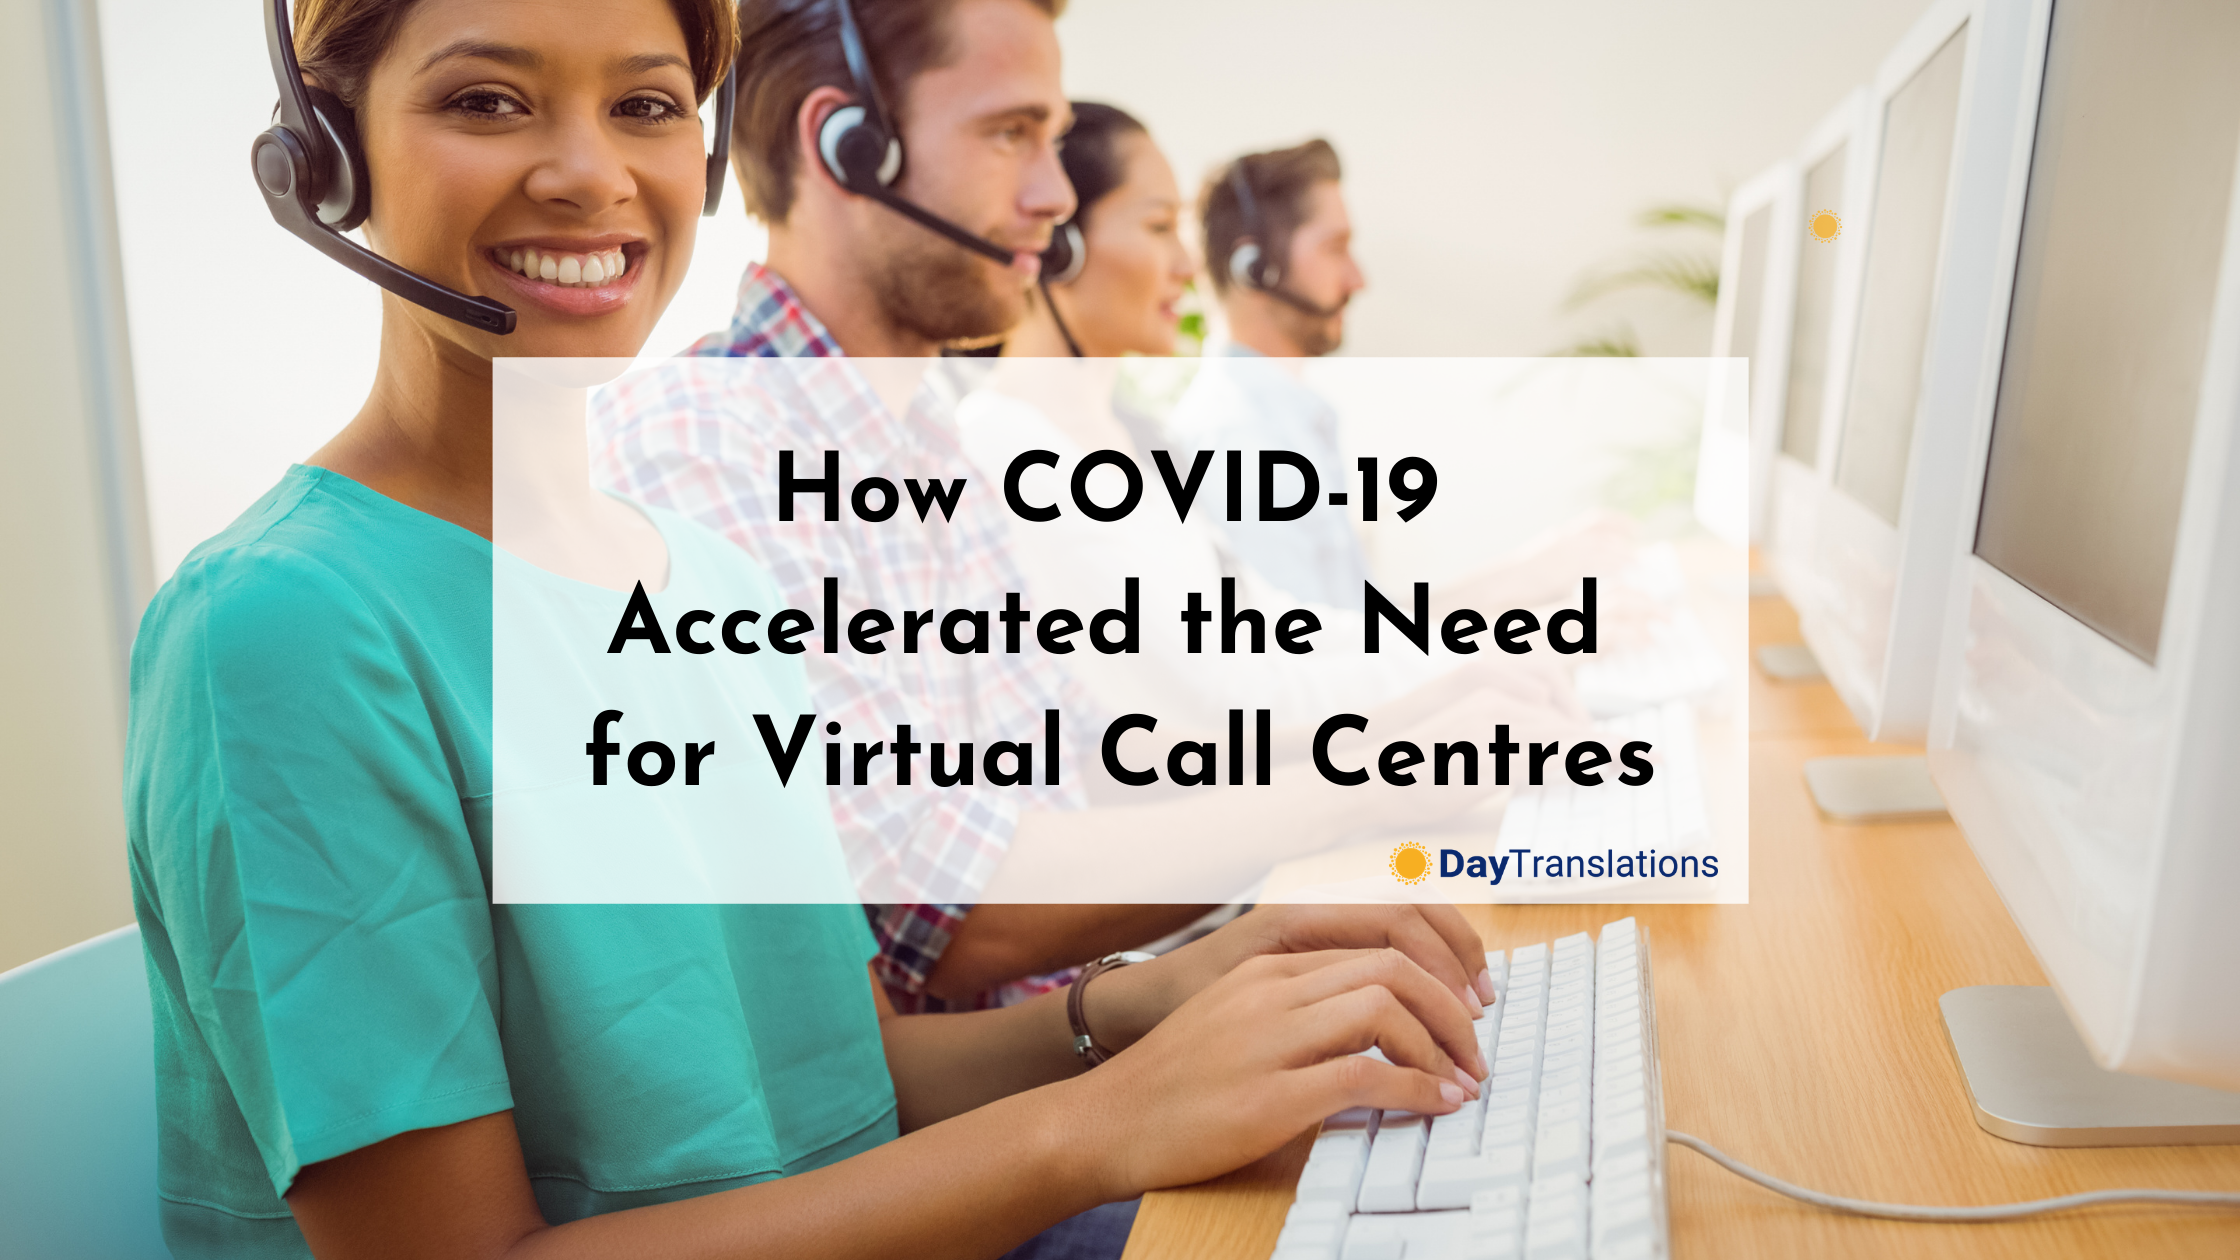 How COVID-19 Accelerated the Need for Virtual Call Centres